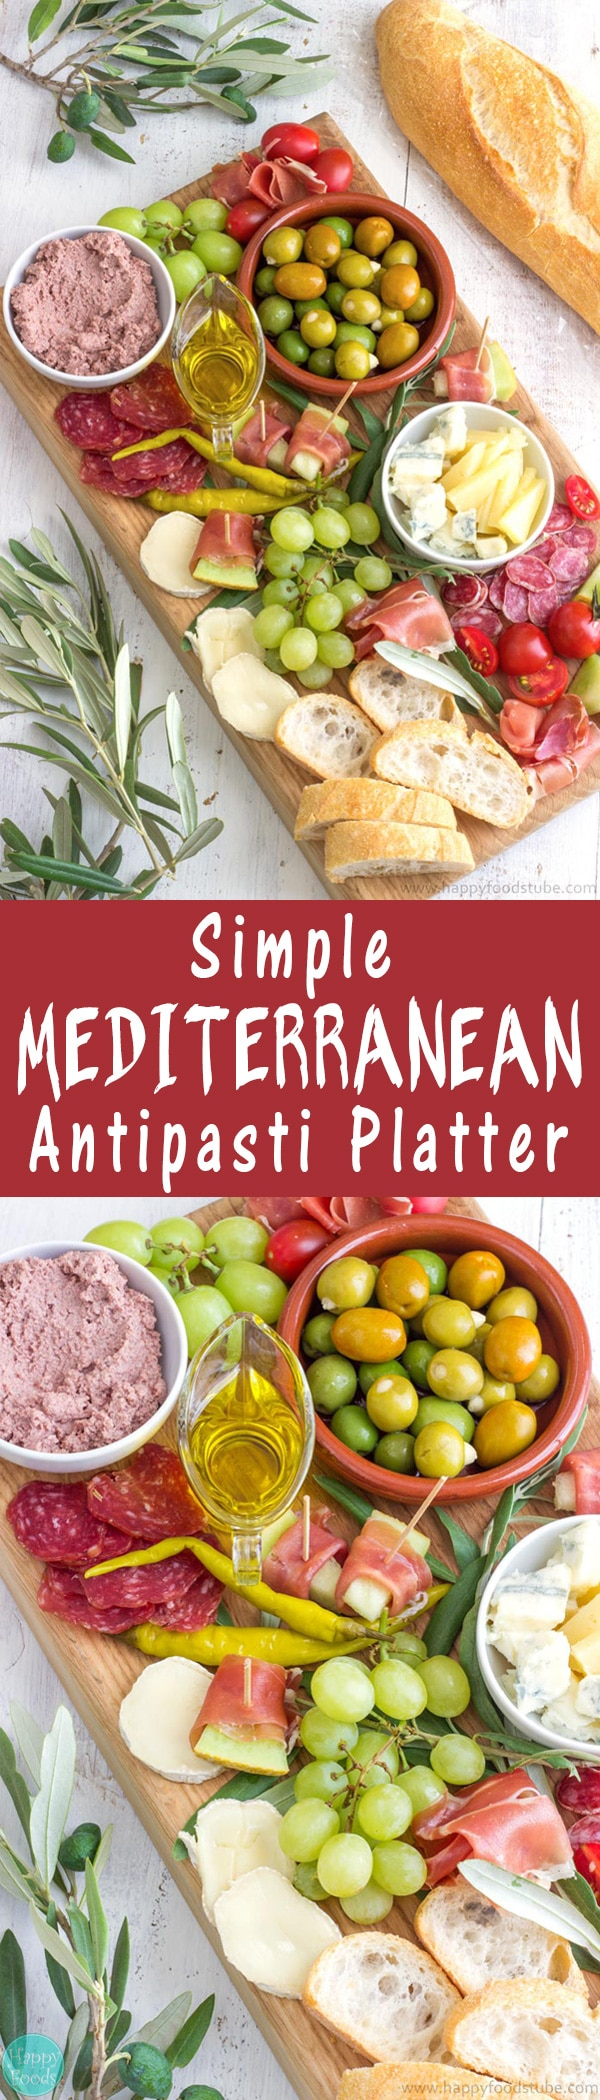 Mediterranean Antipasti Platter recipe. Easy party platter ideas! Olives, Extra Virgin Olive, Prosciutto/Salami/Bresaola, Cheese of your choice, Cherry Tomatoes, Grapes, Bread | happyfoodstube.com